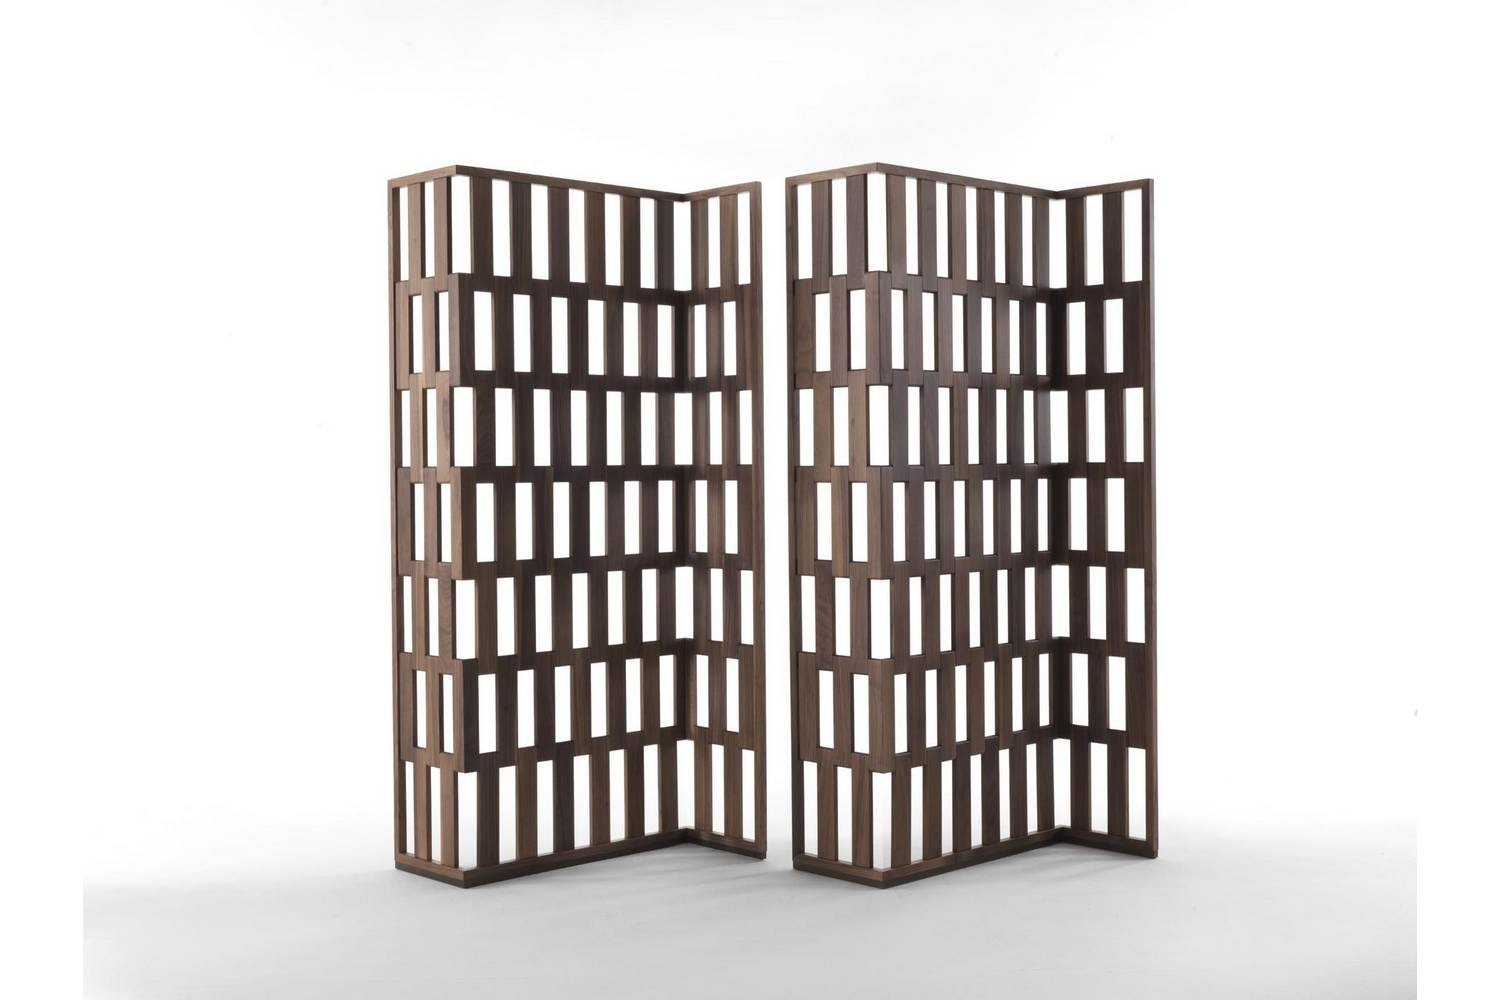 Hilton Room Divider by T. Colzani for Porada